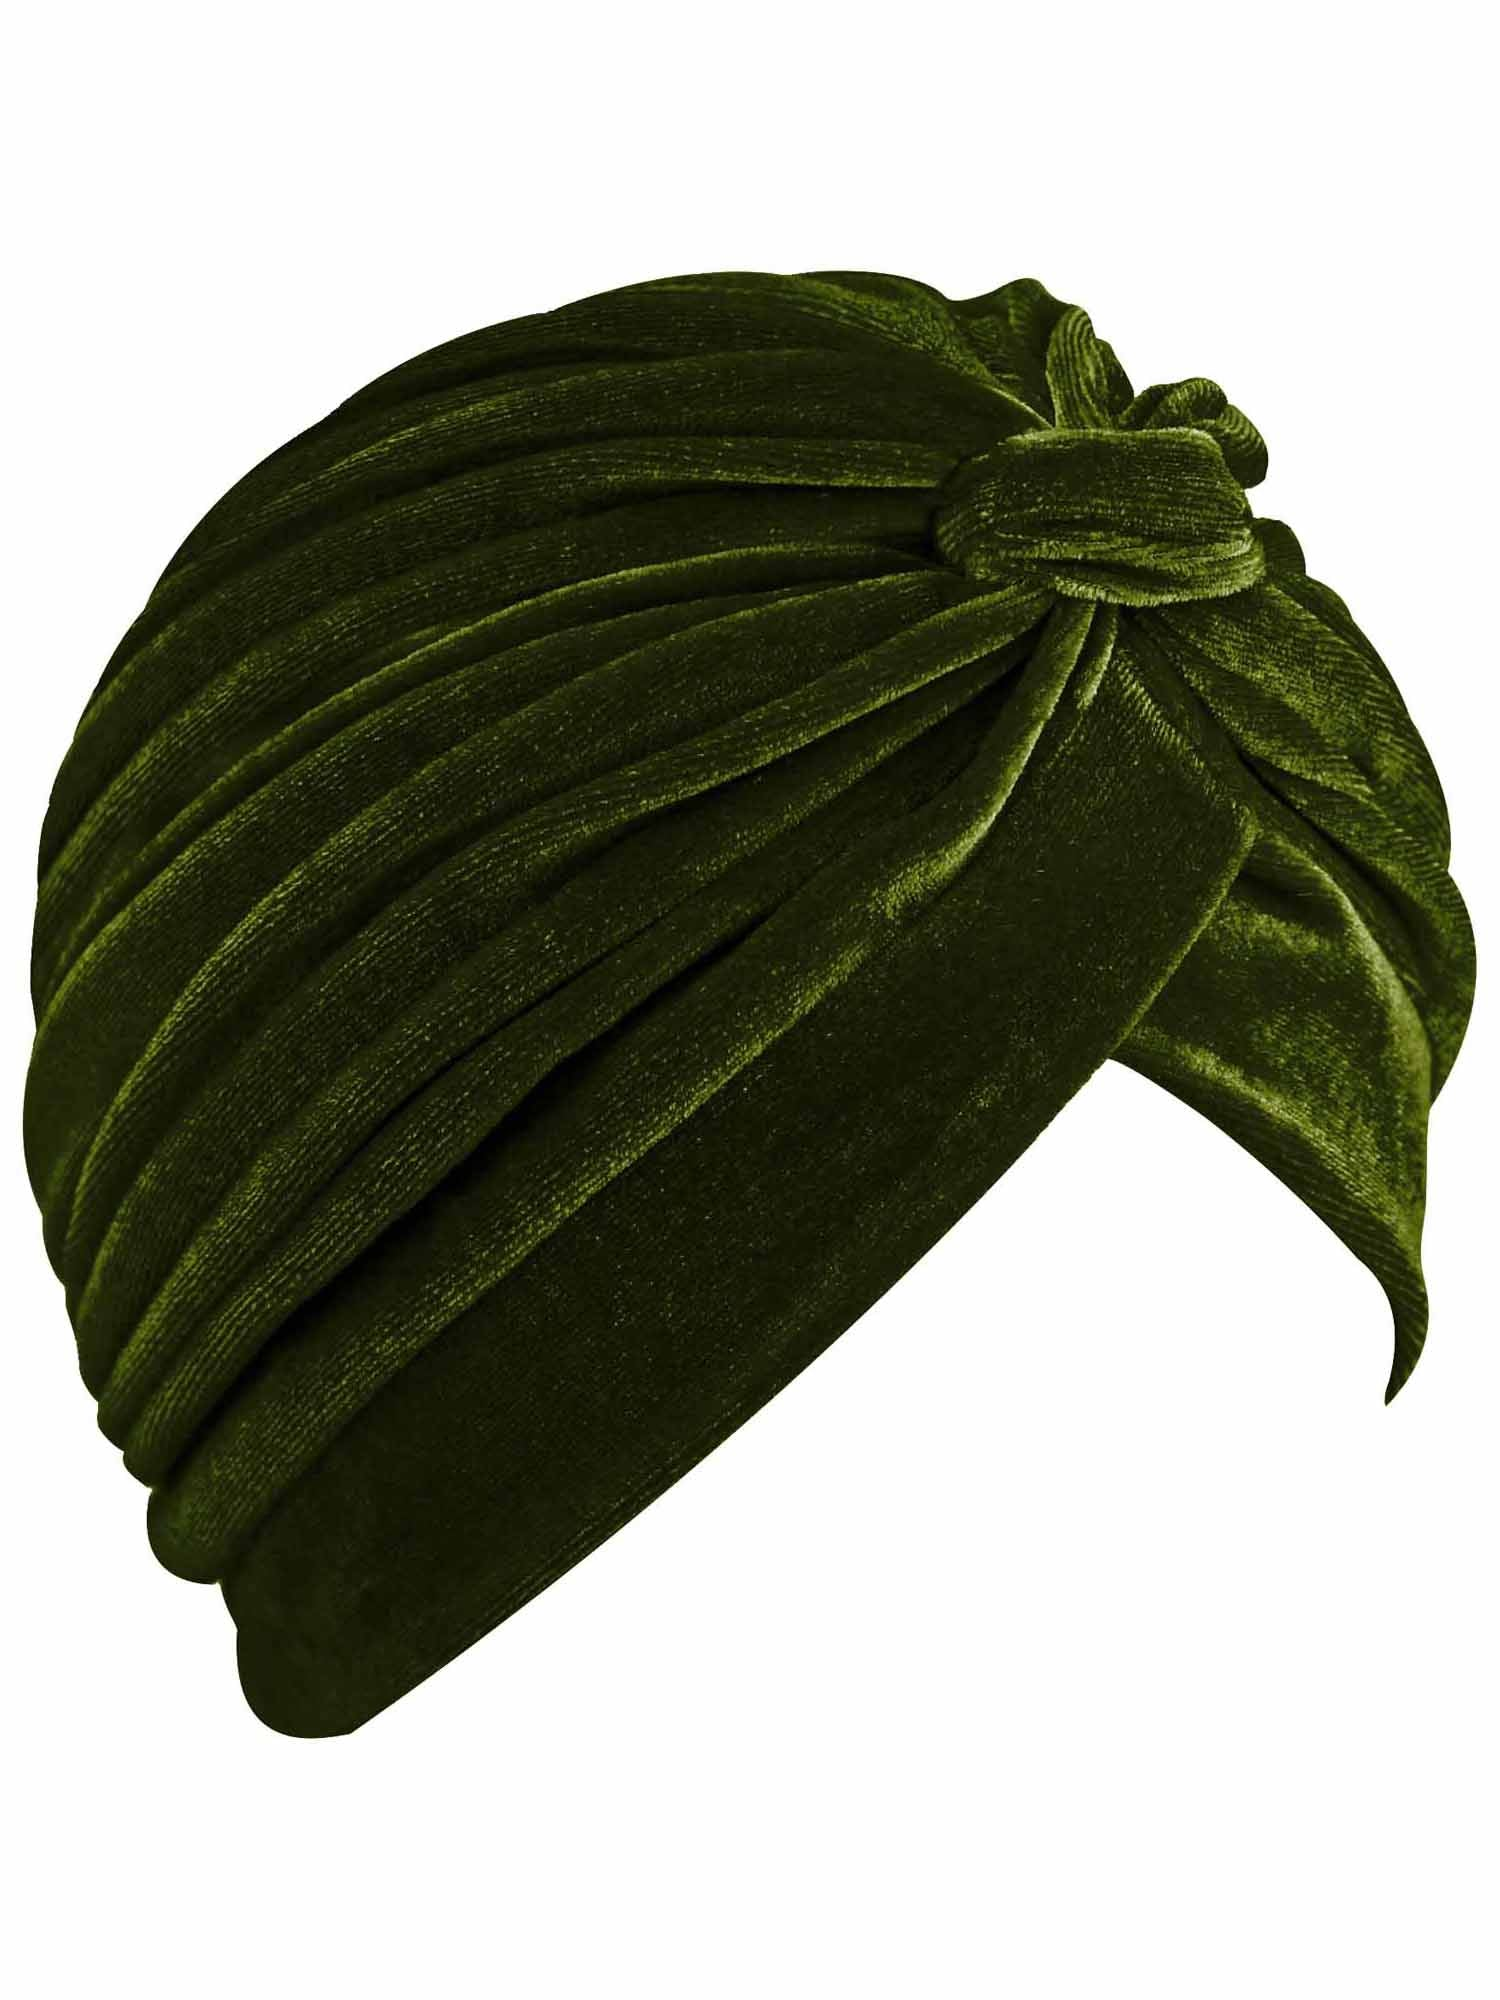 Olive Green Velvet Turban Head Wrap